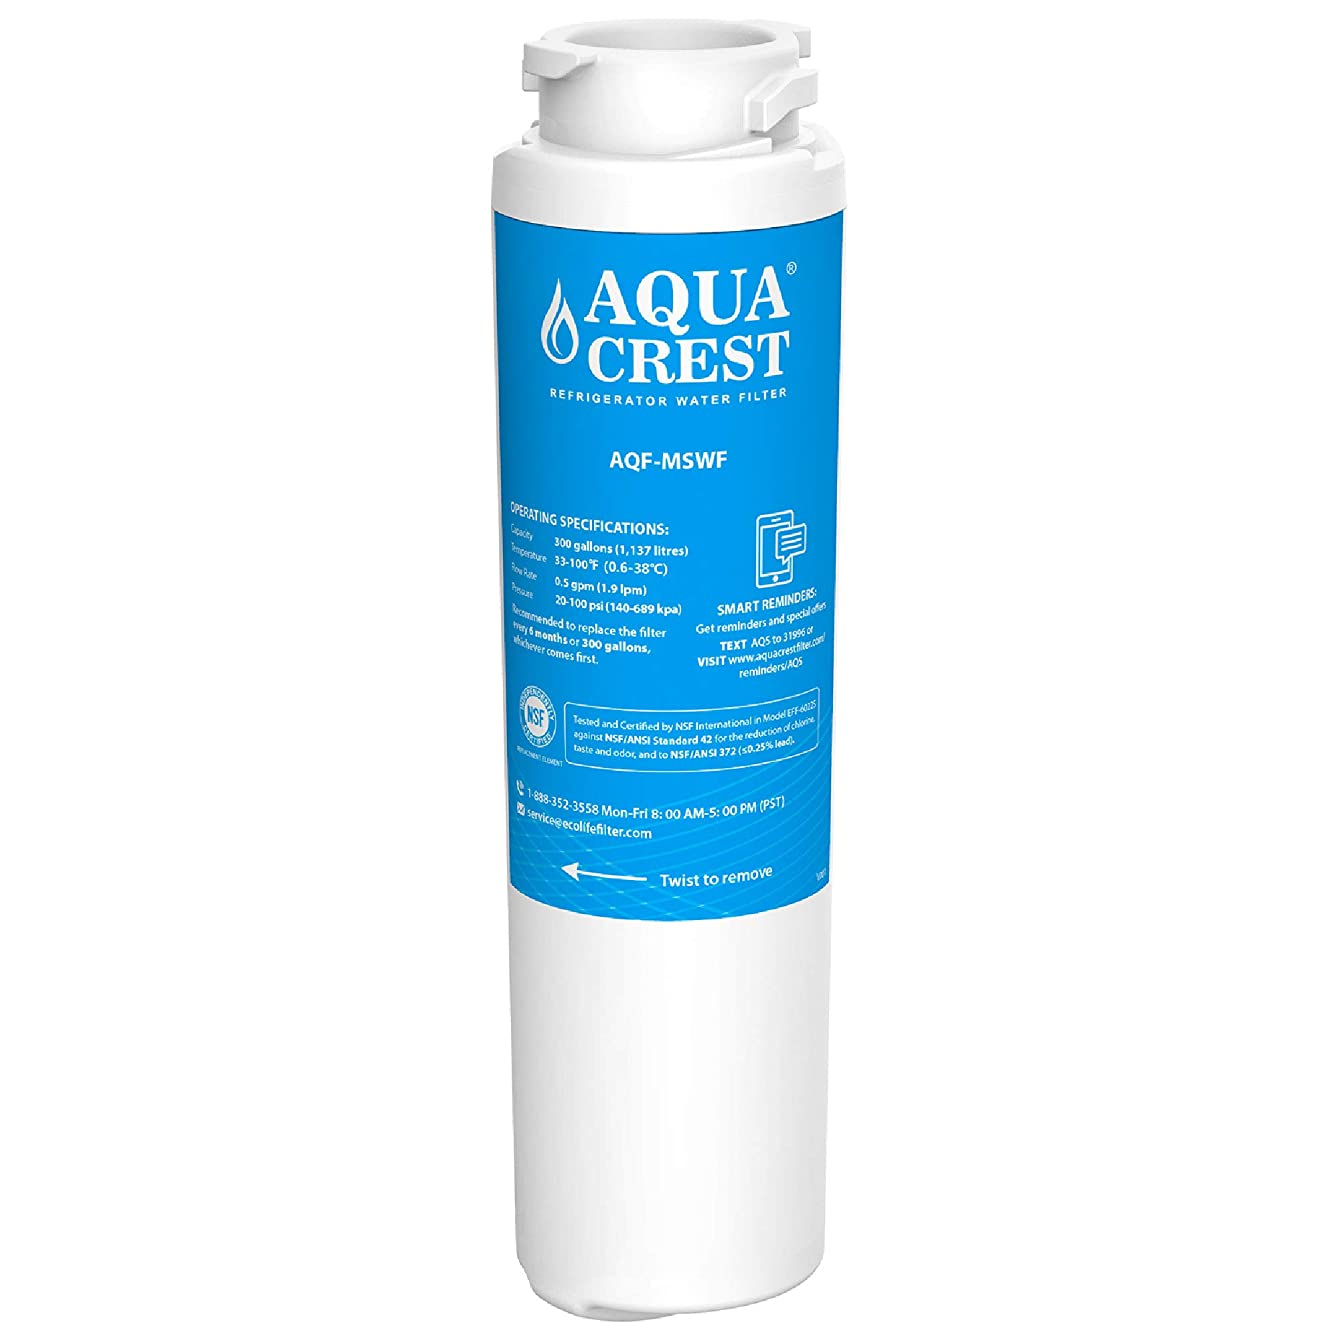 AQUACREST Refrigerator Water Filter, Compatible with GE MSWF SmartWater 101821B 101820A